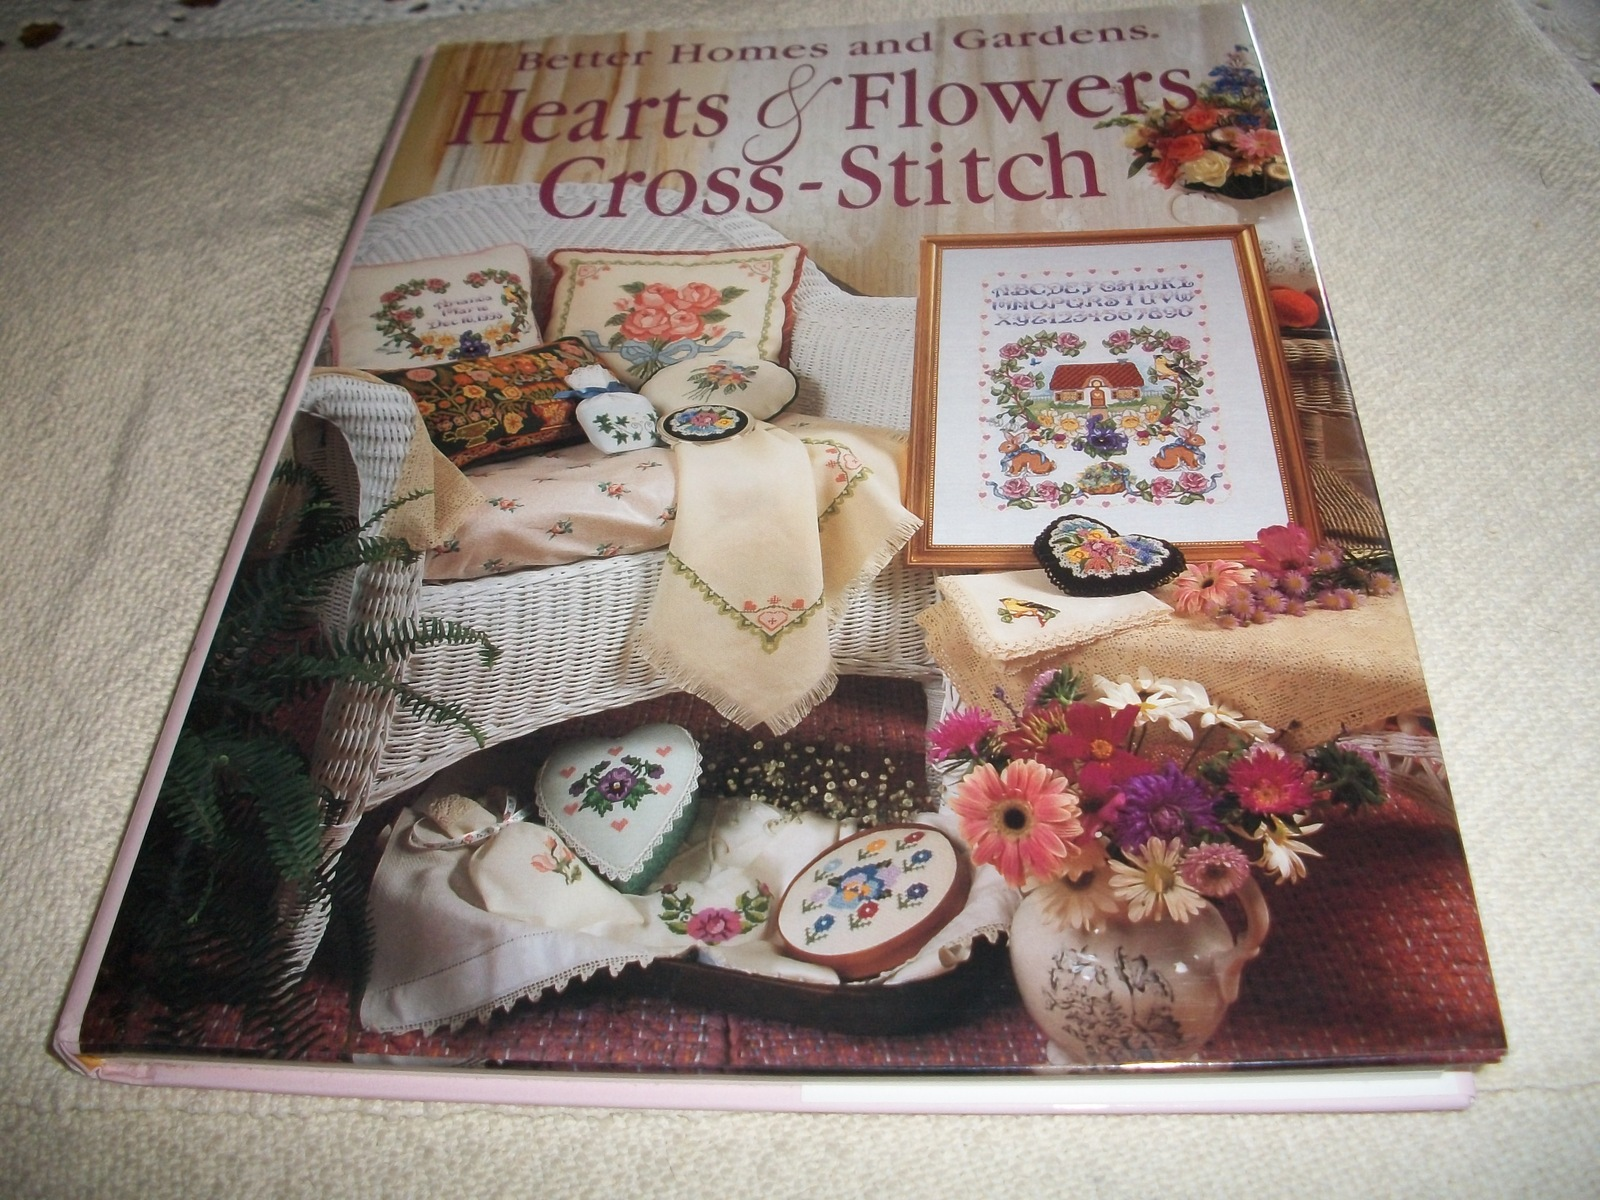 Primary image for Better Homes and Gardens Hearts & Flowers Cross-Stitch